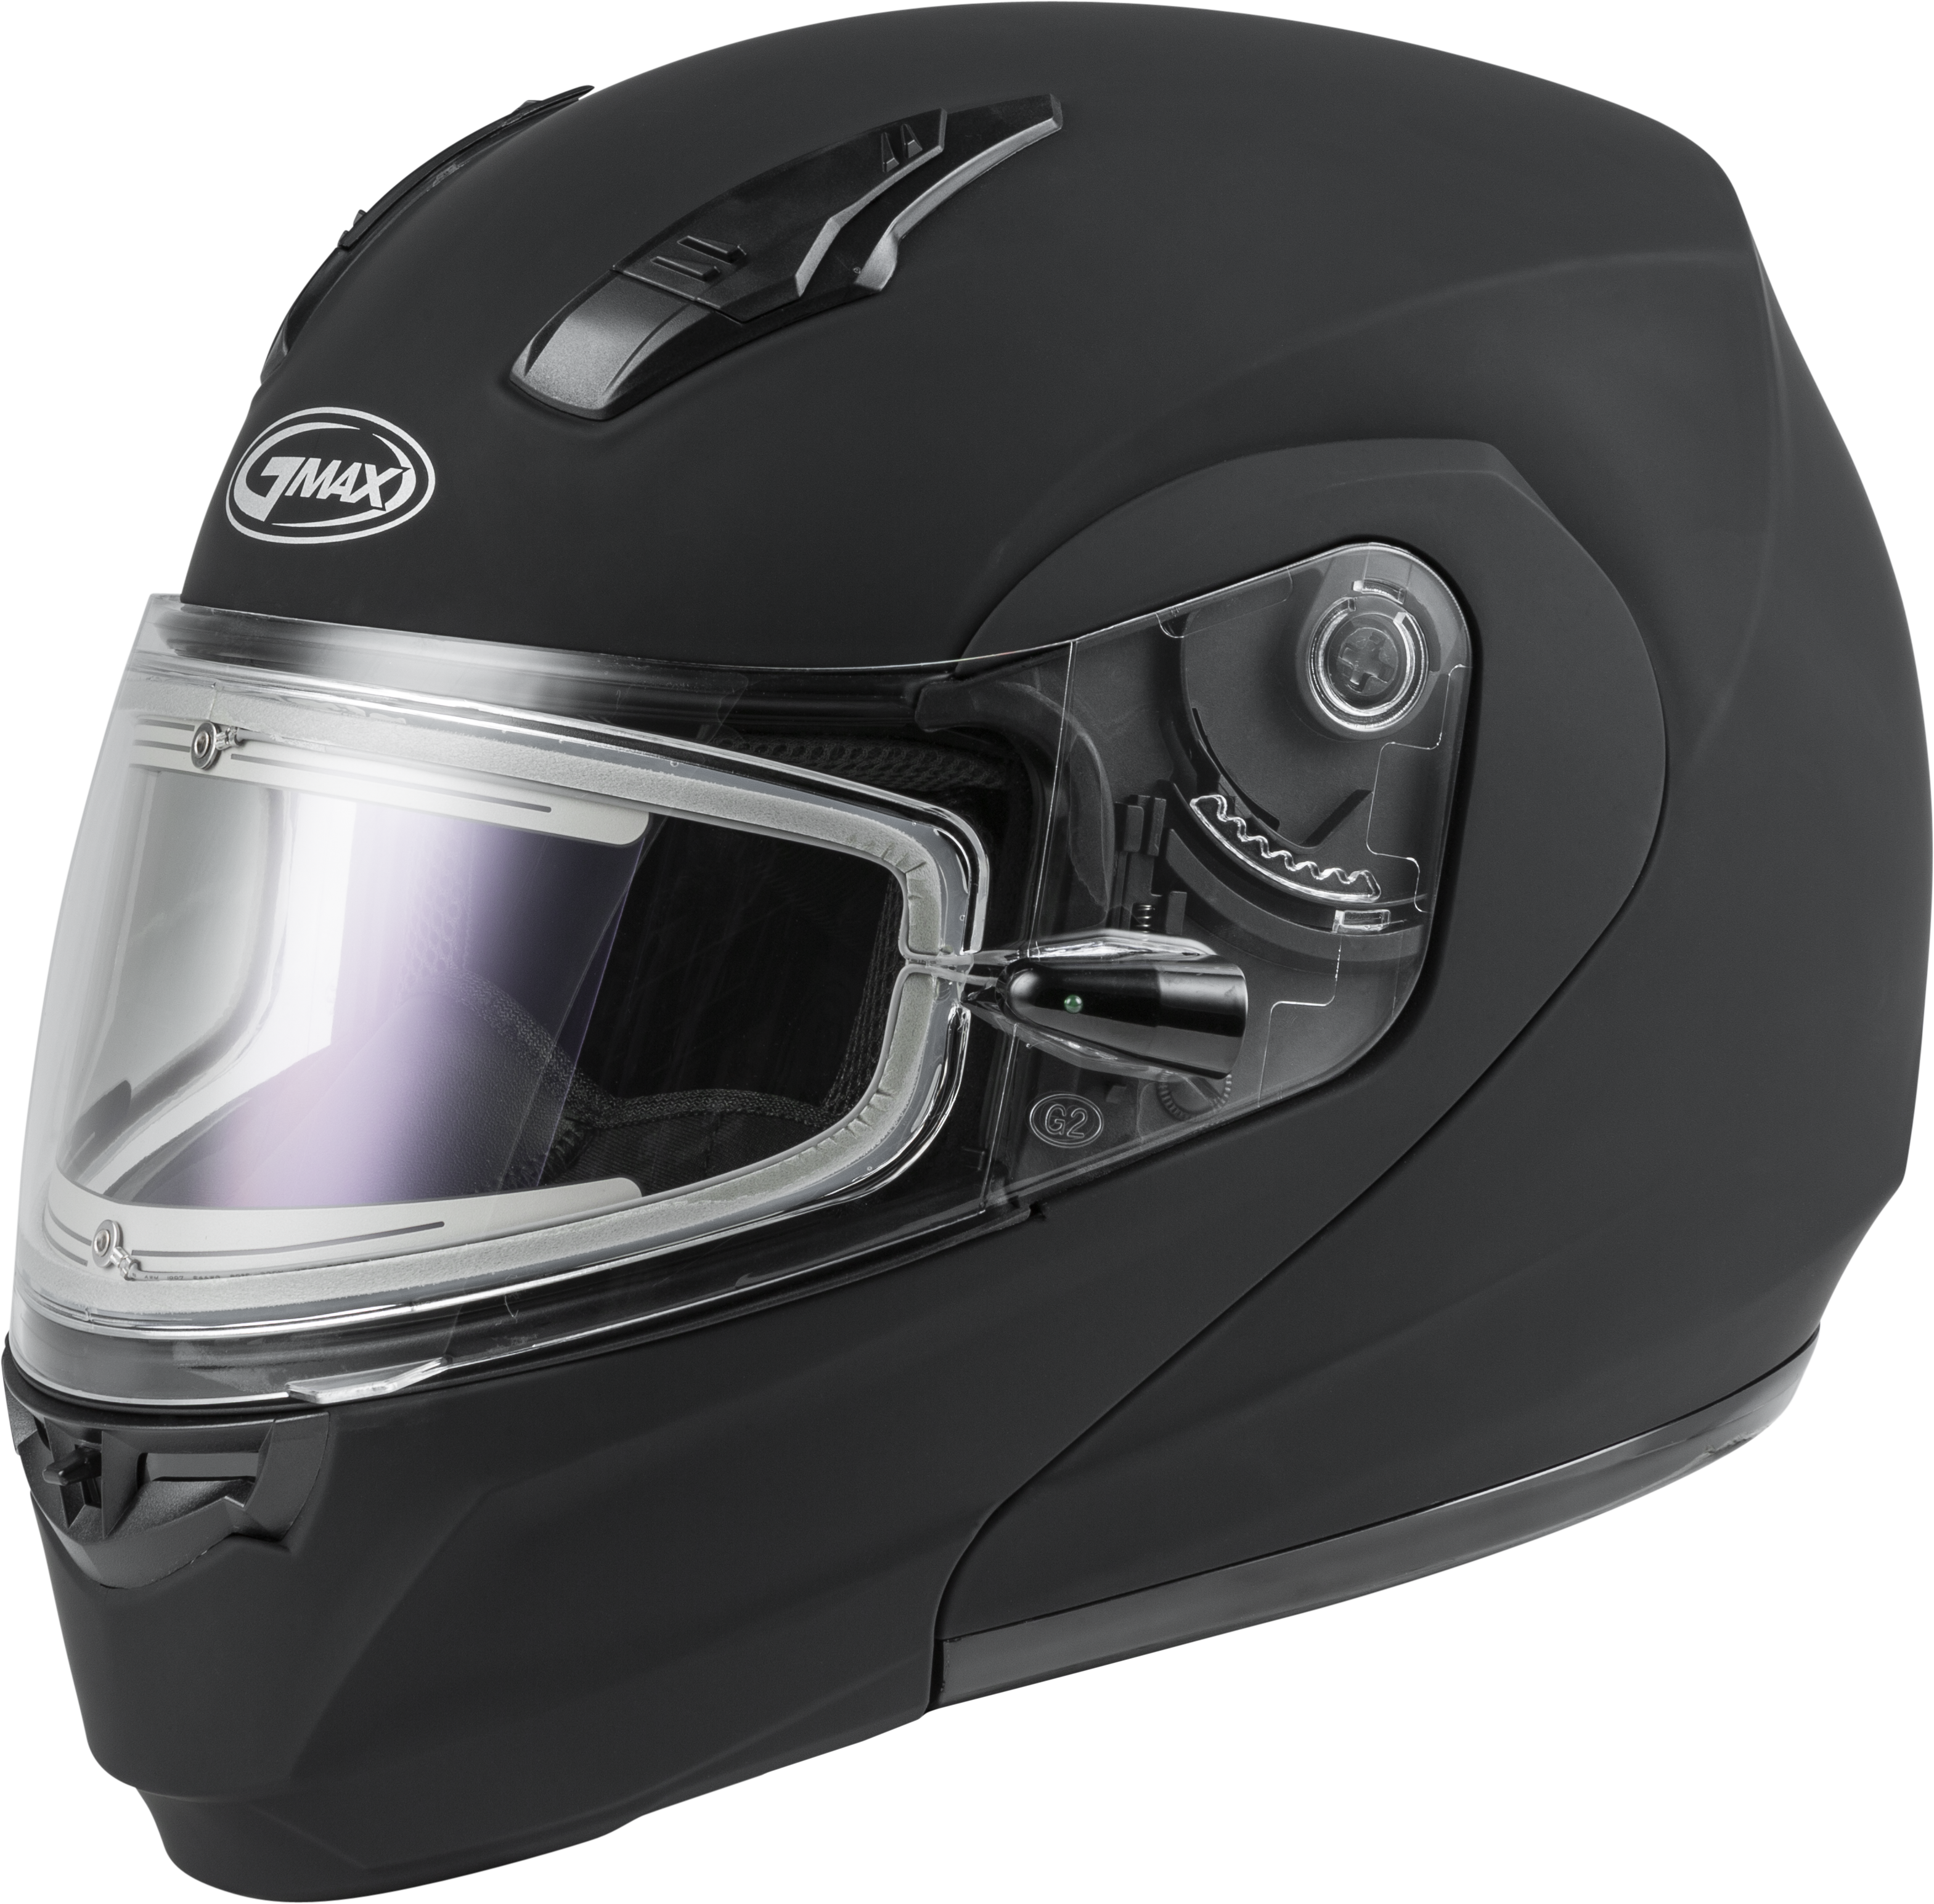 MD-04S Snow Helmet Solid w/Quick Release Buckle Electric Shield